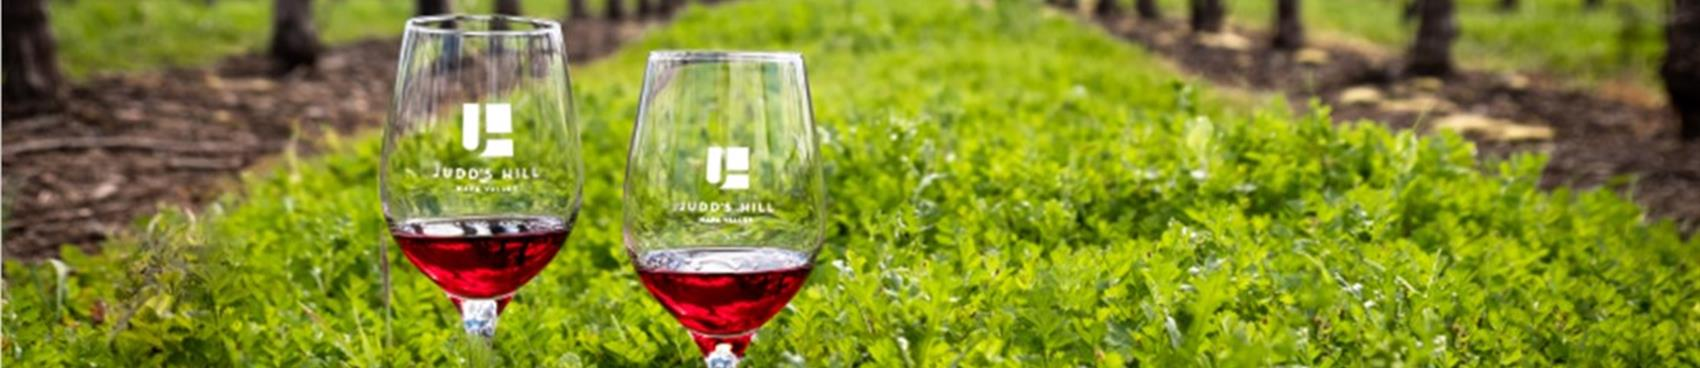 Valentines in March Party at Judd's Hill Winery